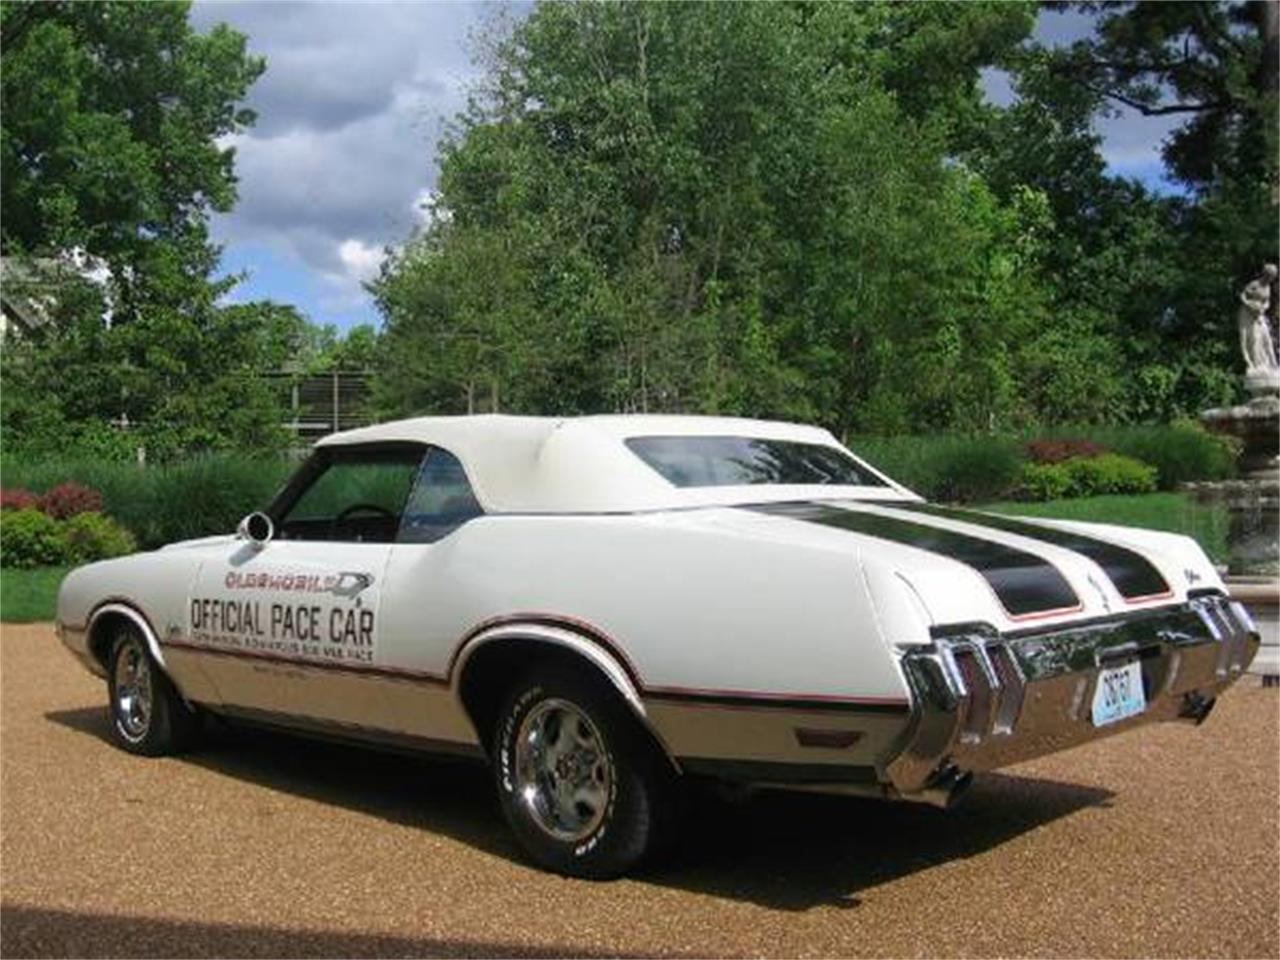 Large Picture of Classic '70 Cutlass Supreme located in St. Louis Missouri - $46,500.00 Offered by a Private Seller - E0YT